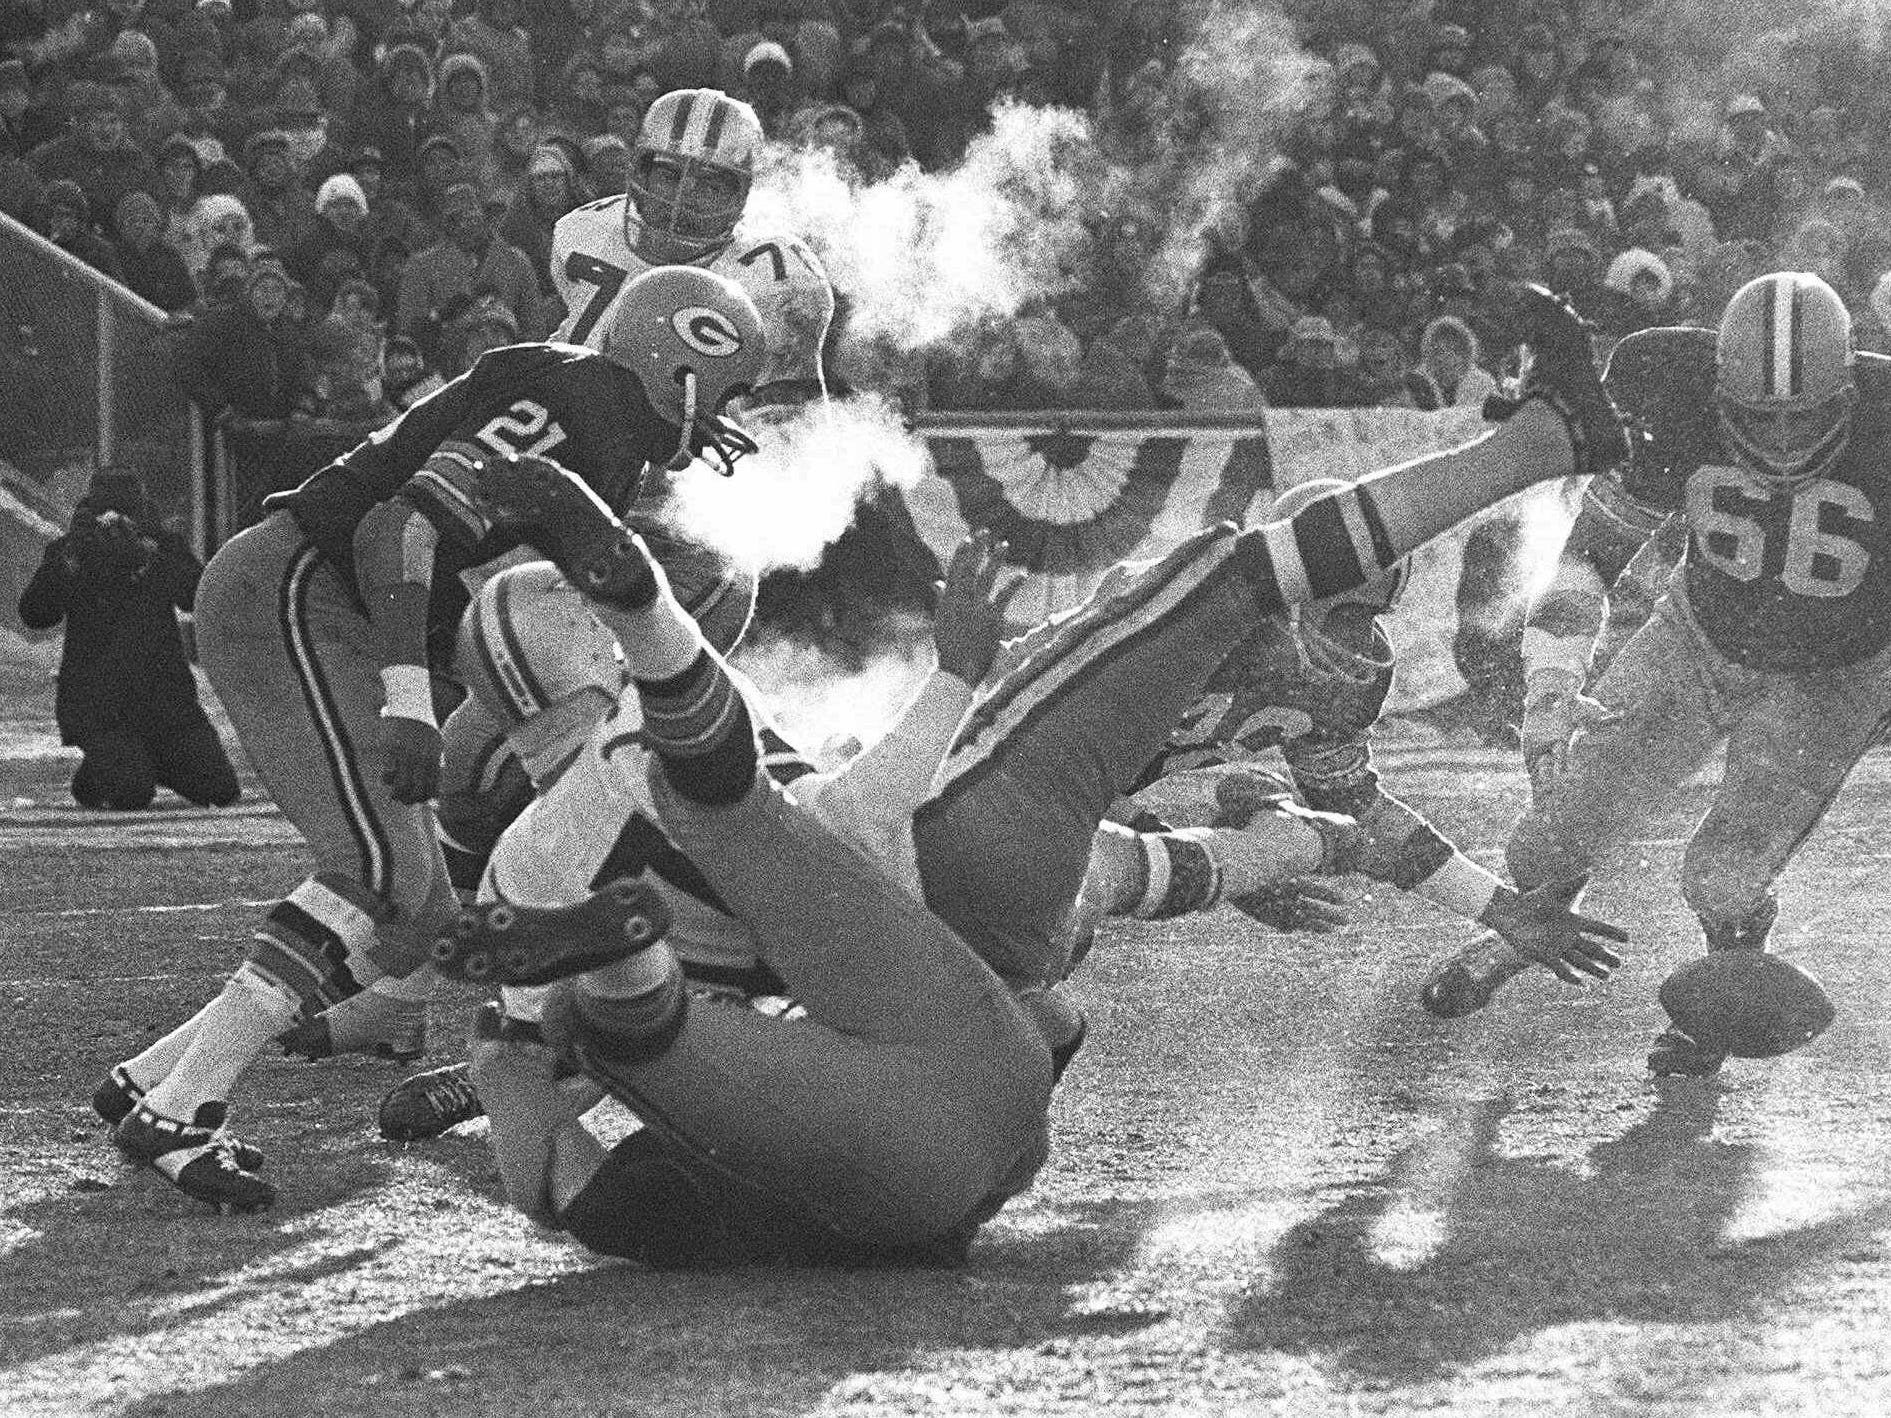 "Dec. 31, 1967: Players spill in all directions as a fumble occurs during the ""Ice Bowl"" at Lambeau Field. The Green Bay Packers defeated the Dallas Cowboys, 21-17, in one of the most famous games in NFL history."